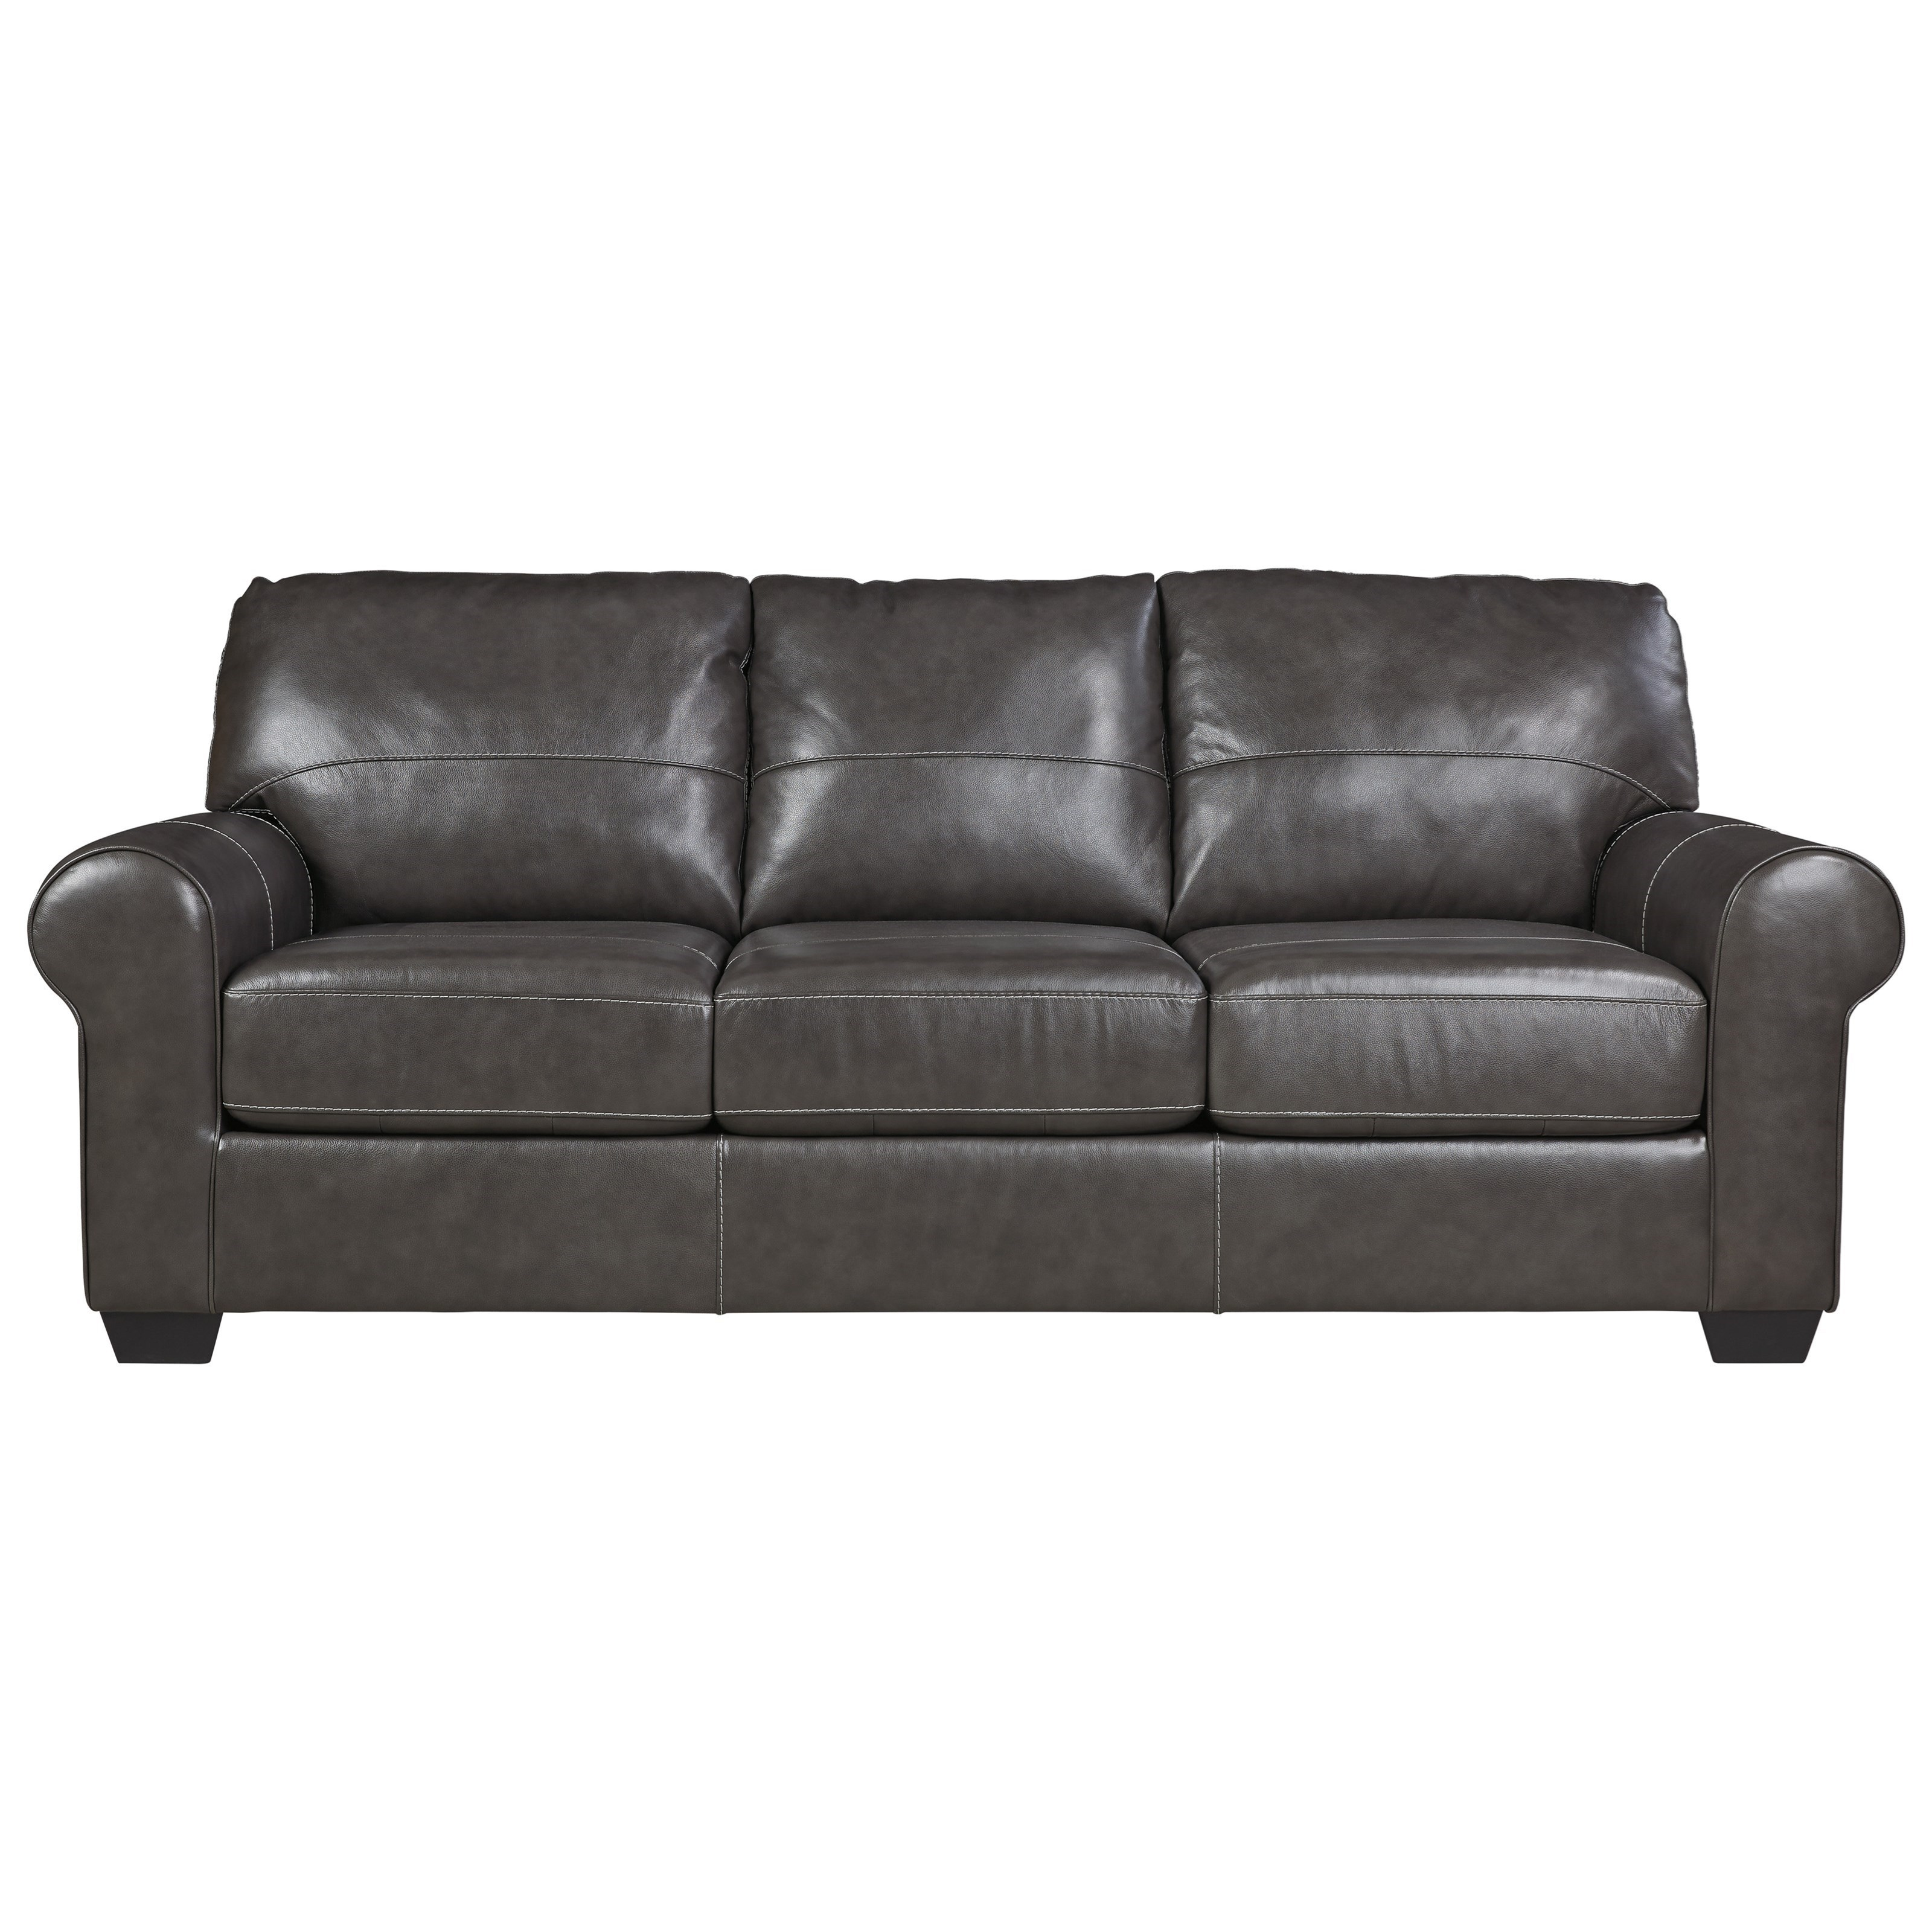 Signature Design By Ashley Canterelli 9800339 Leather Match Queen Sofa Sleeper Del Sol